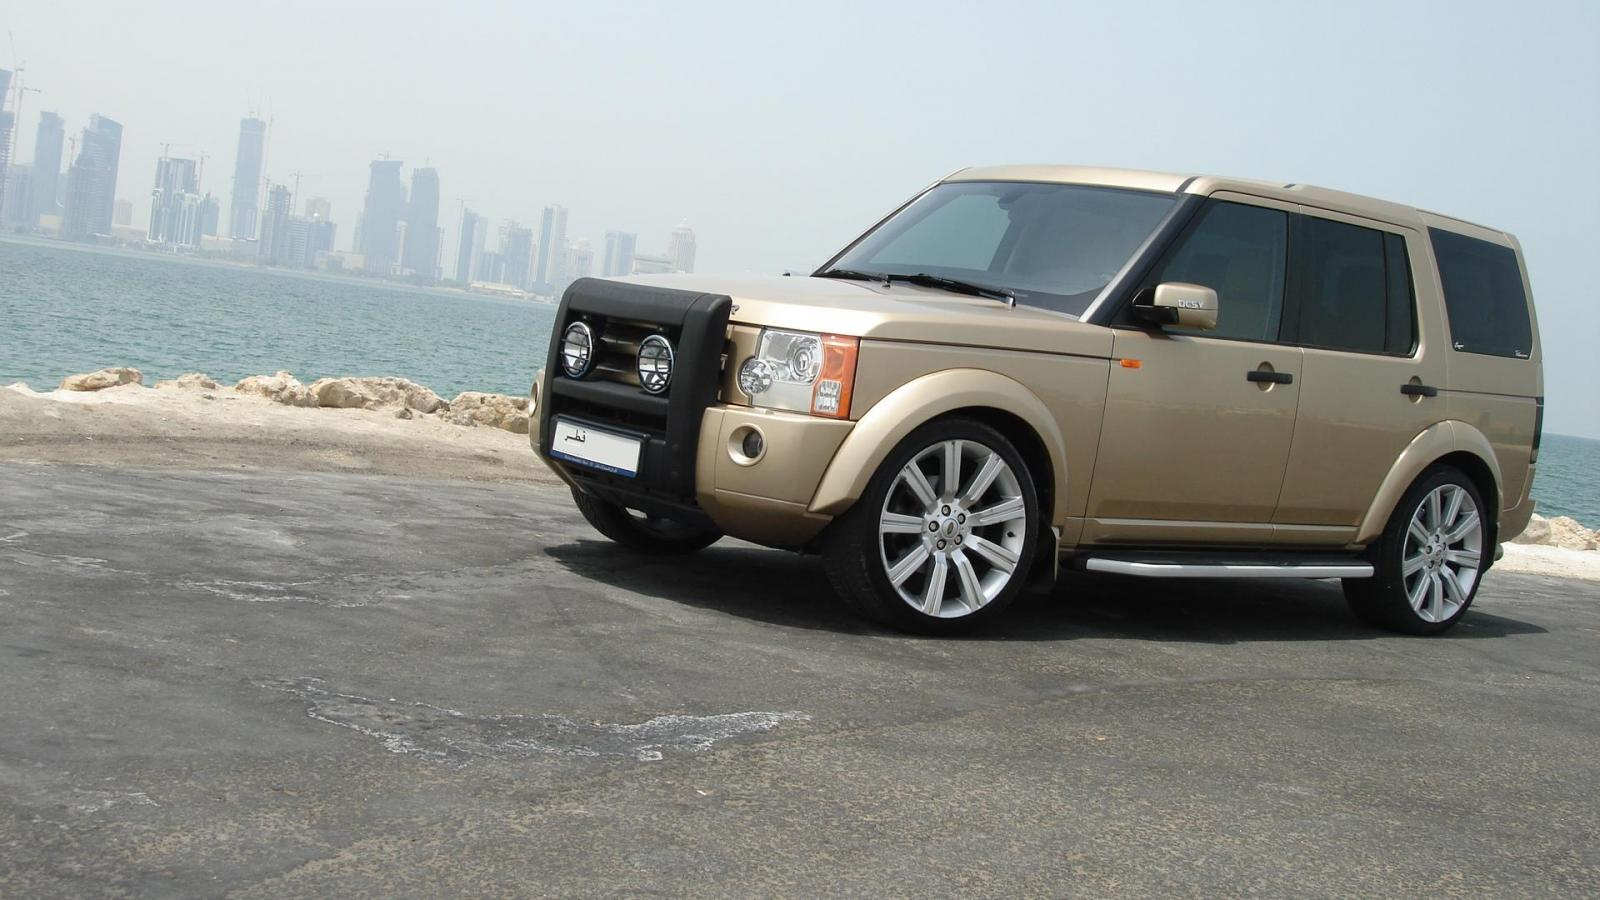 2006 land rover lr3 information and photos zombiedrive. Black Bedroom Furniture Sets. Home Design Ideas